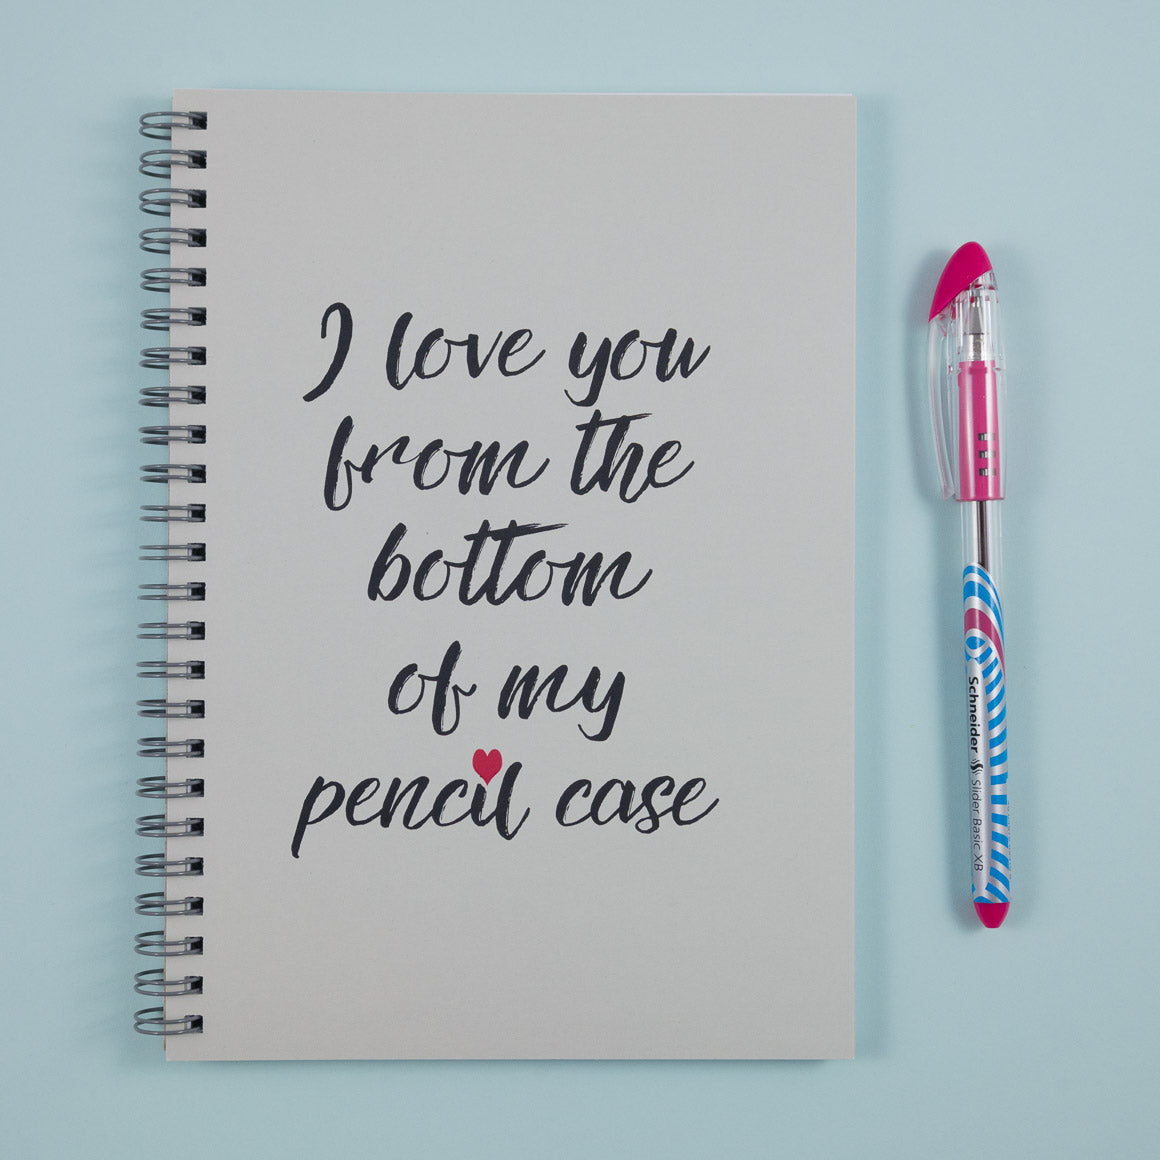 Love you from the bottom of my pencil case